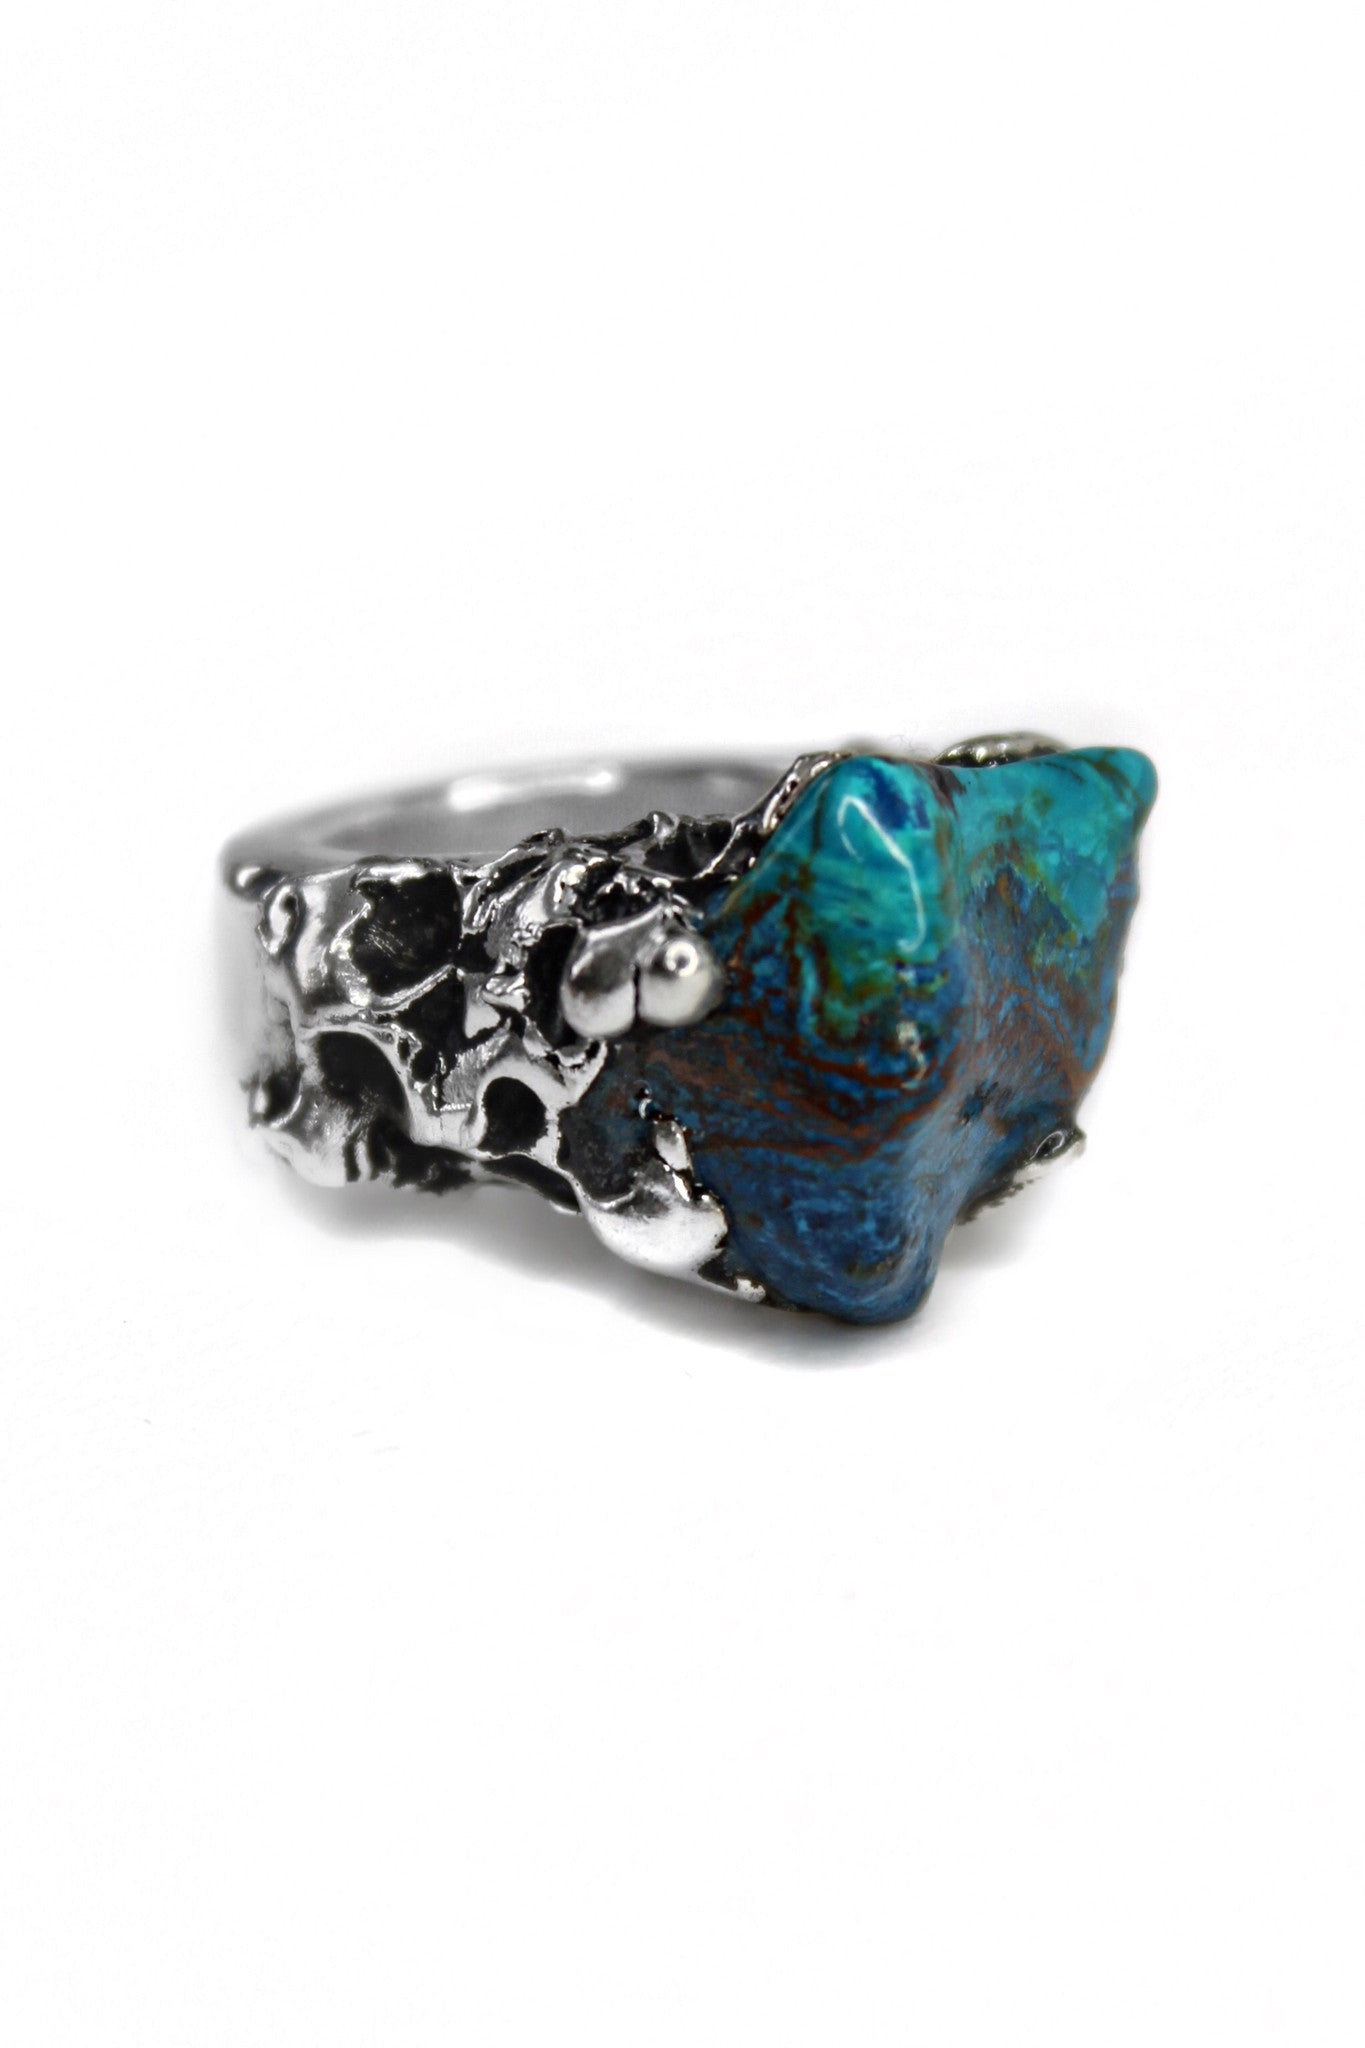 sterling silver ring with malachite stone